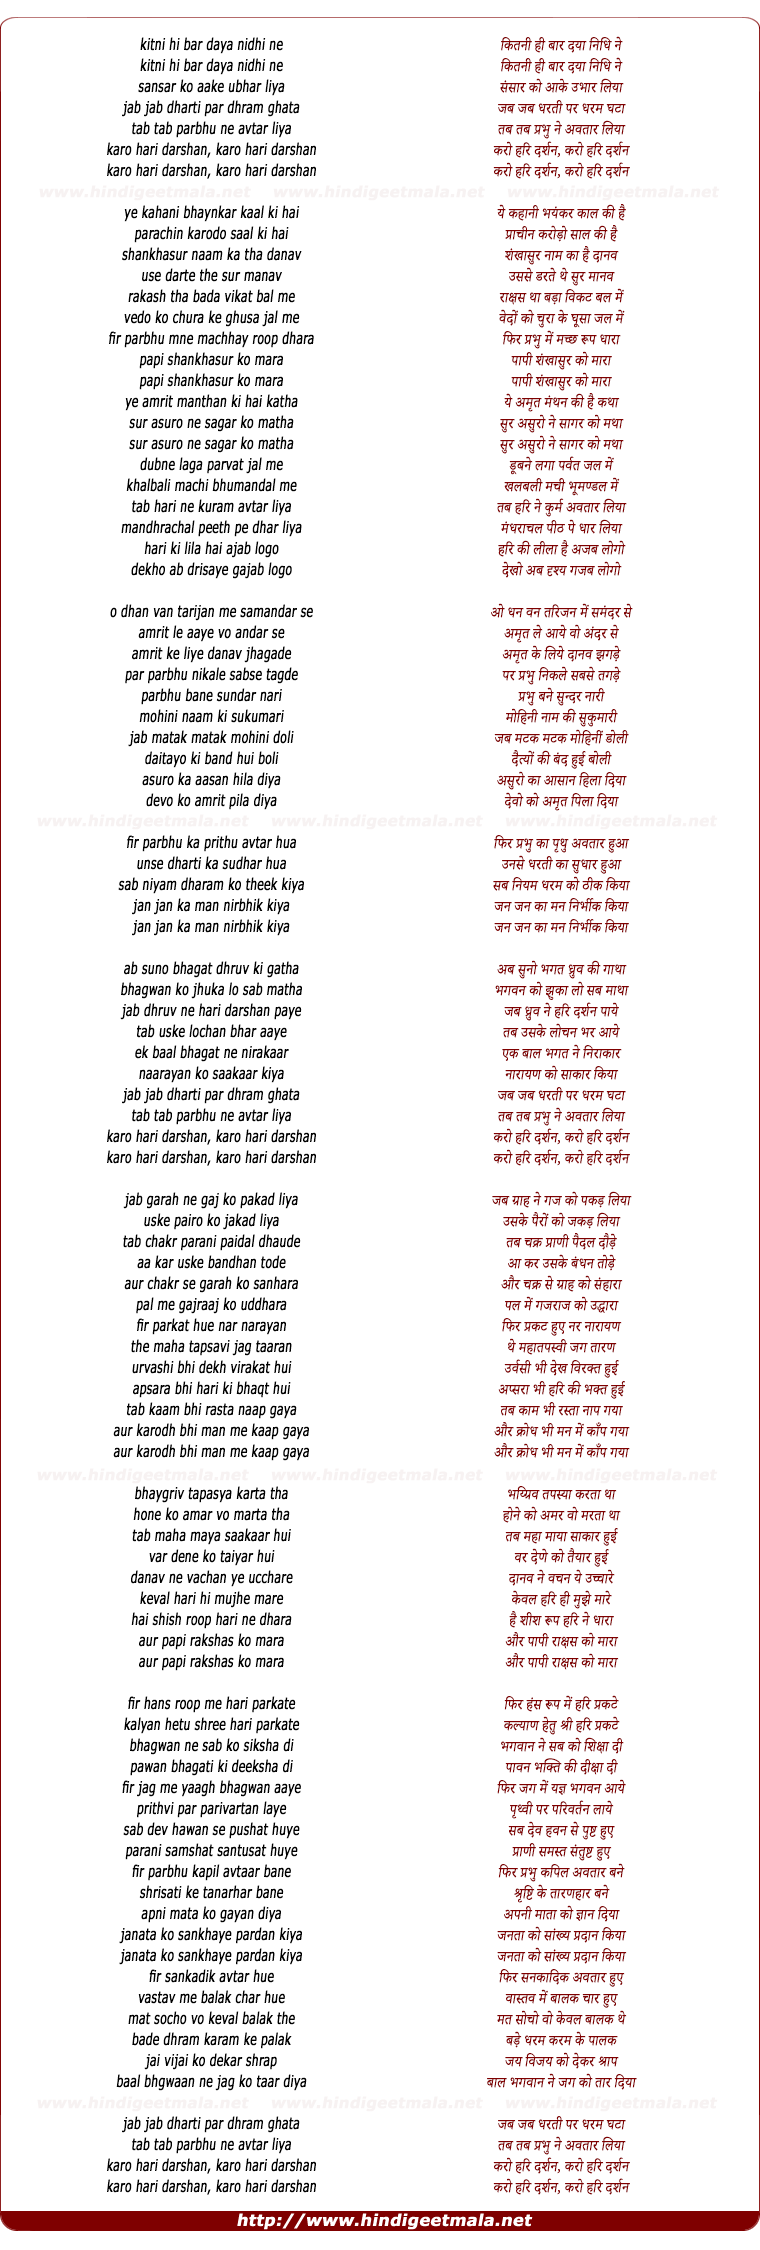 lyrics of song Karo Hari Darshan (Jab Jab Dharti Par Julm Bada)